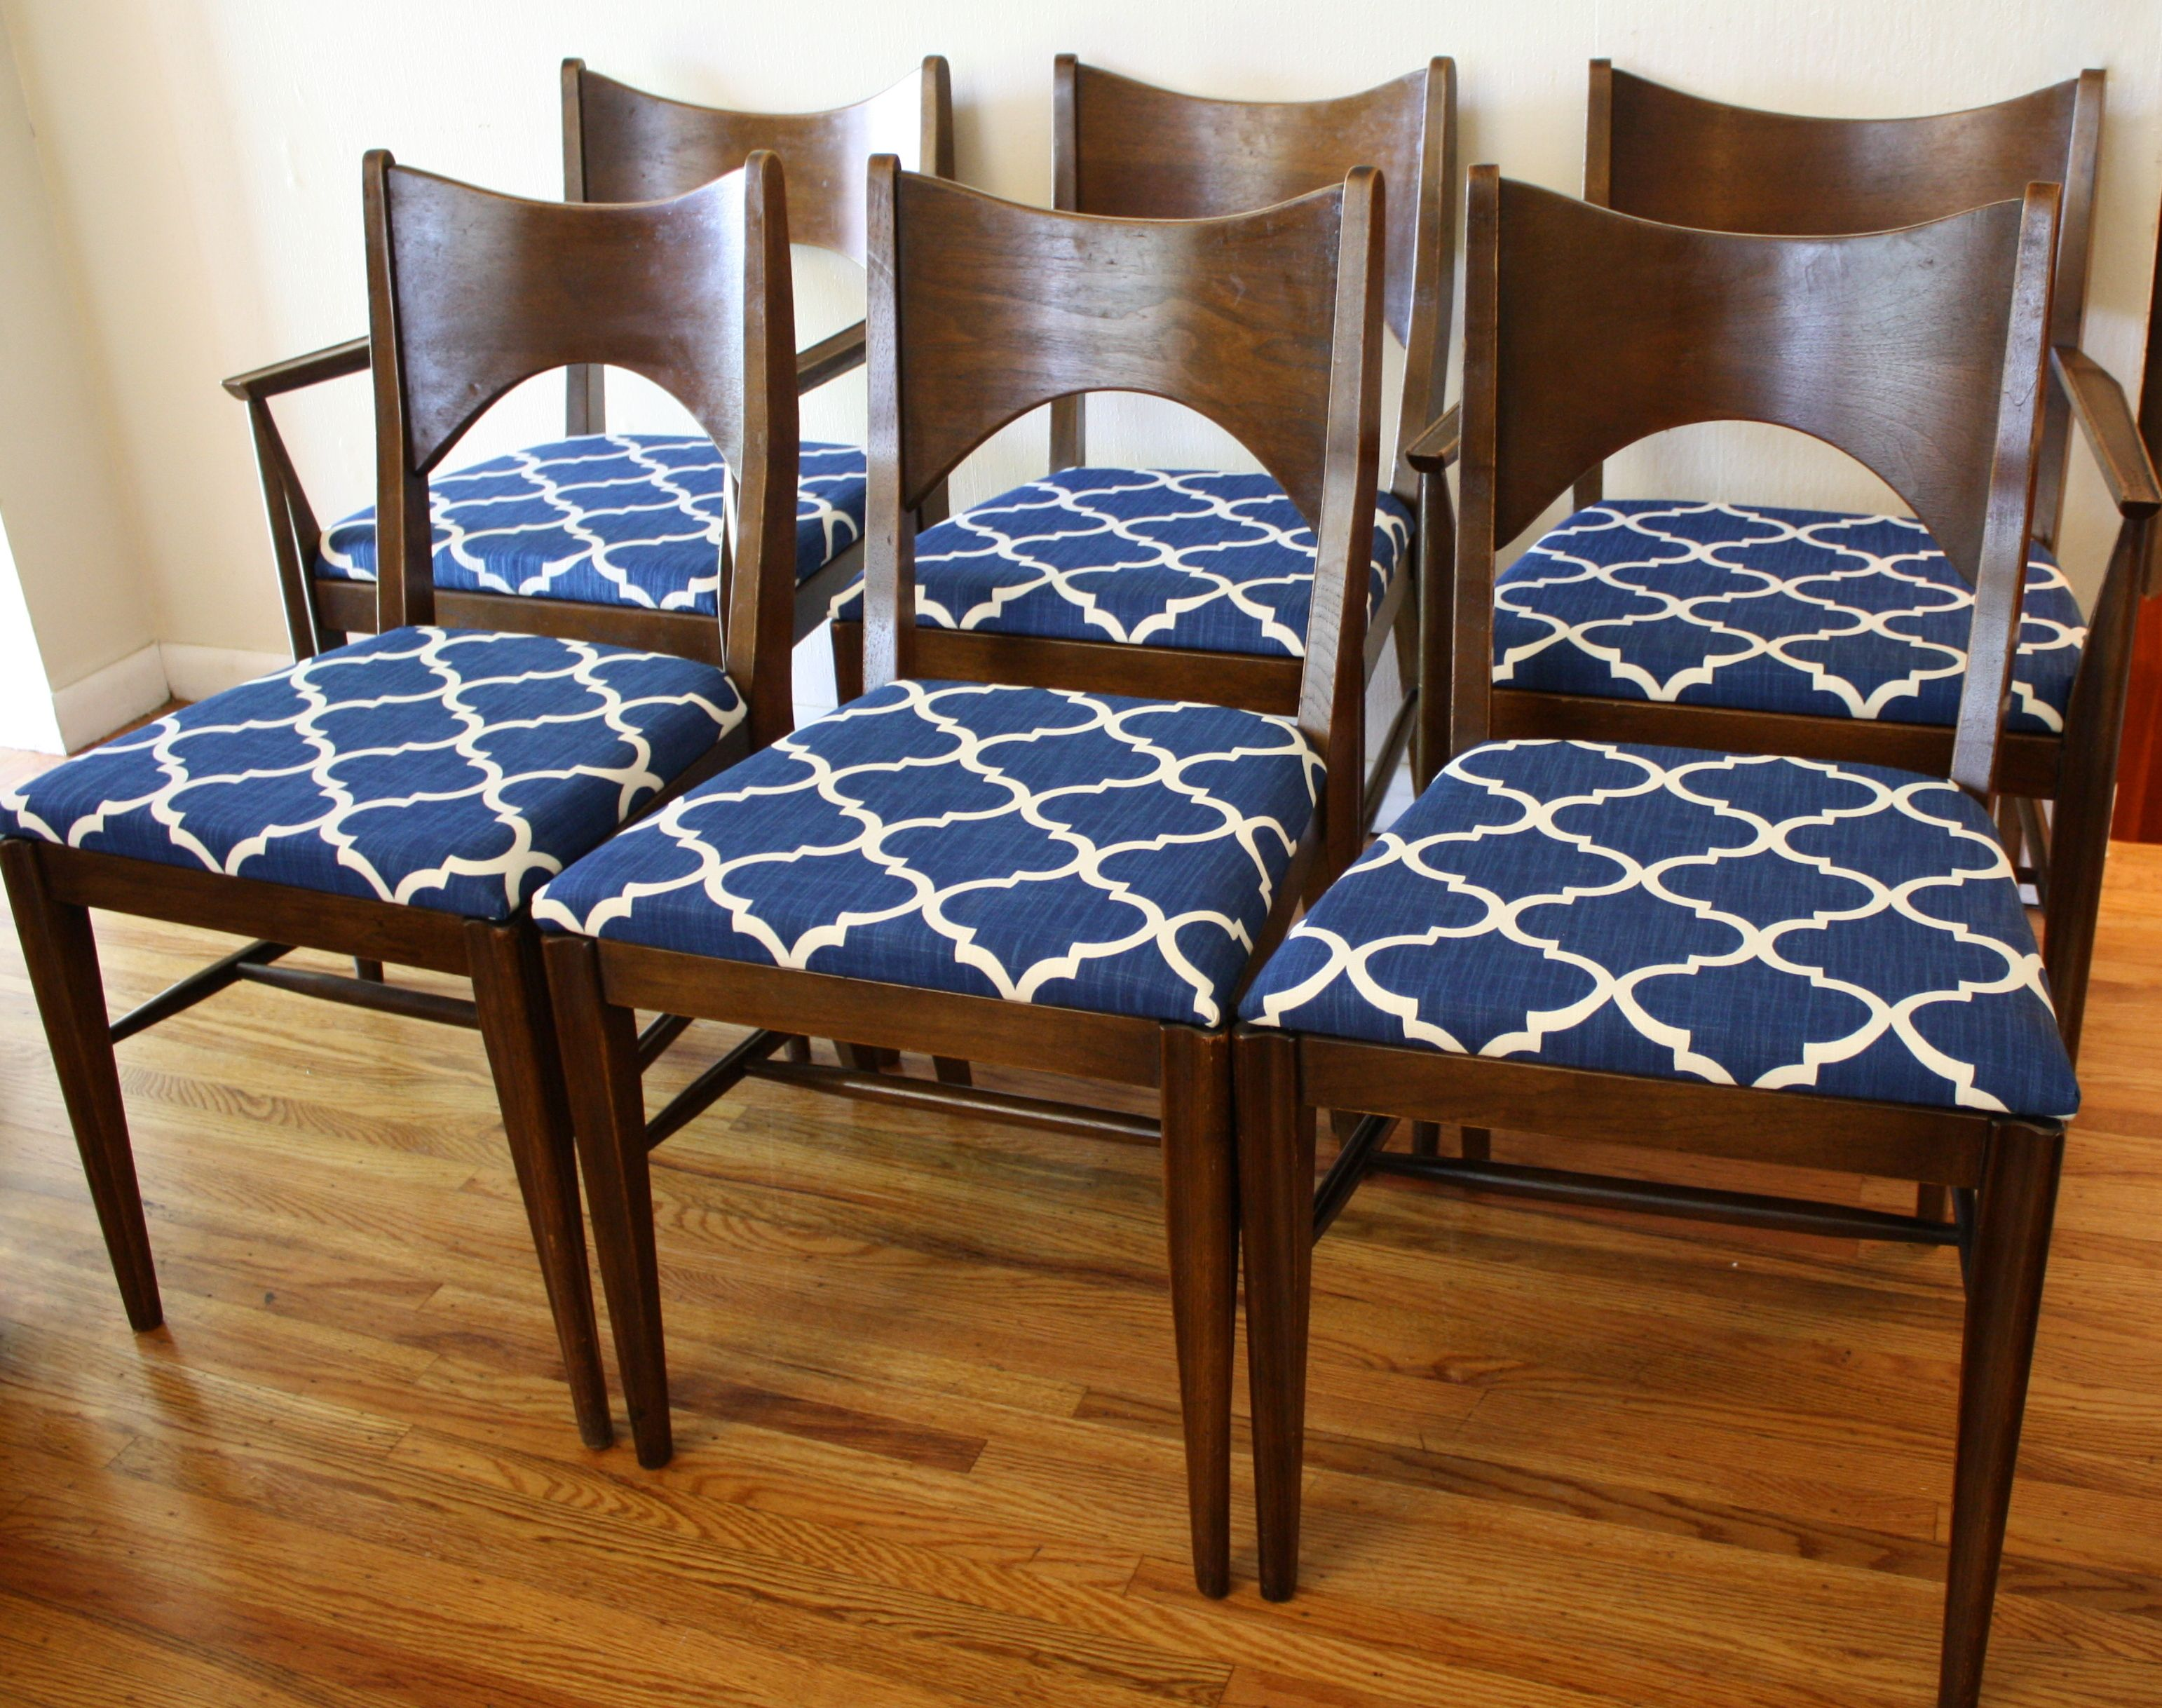 High Quality There Are 4 Dining Chairs In This Set In A Complimentary Windsor Style.  Description From